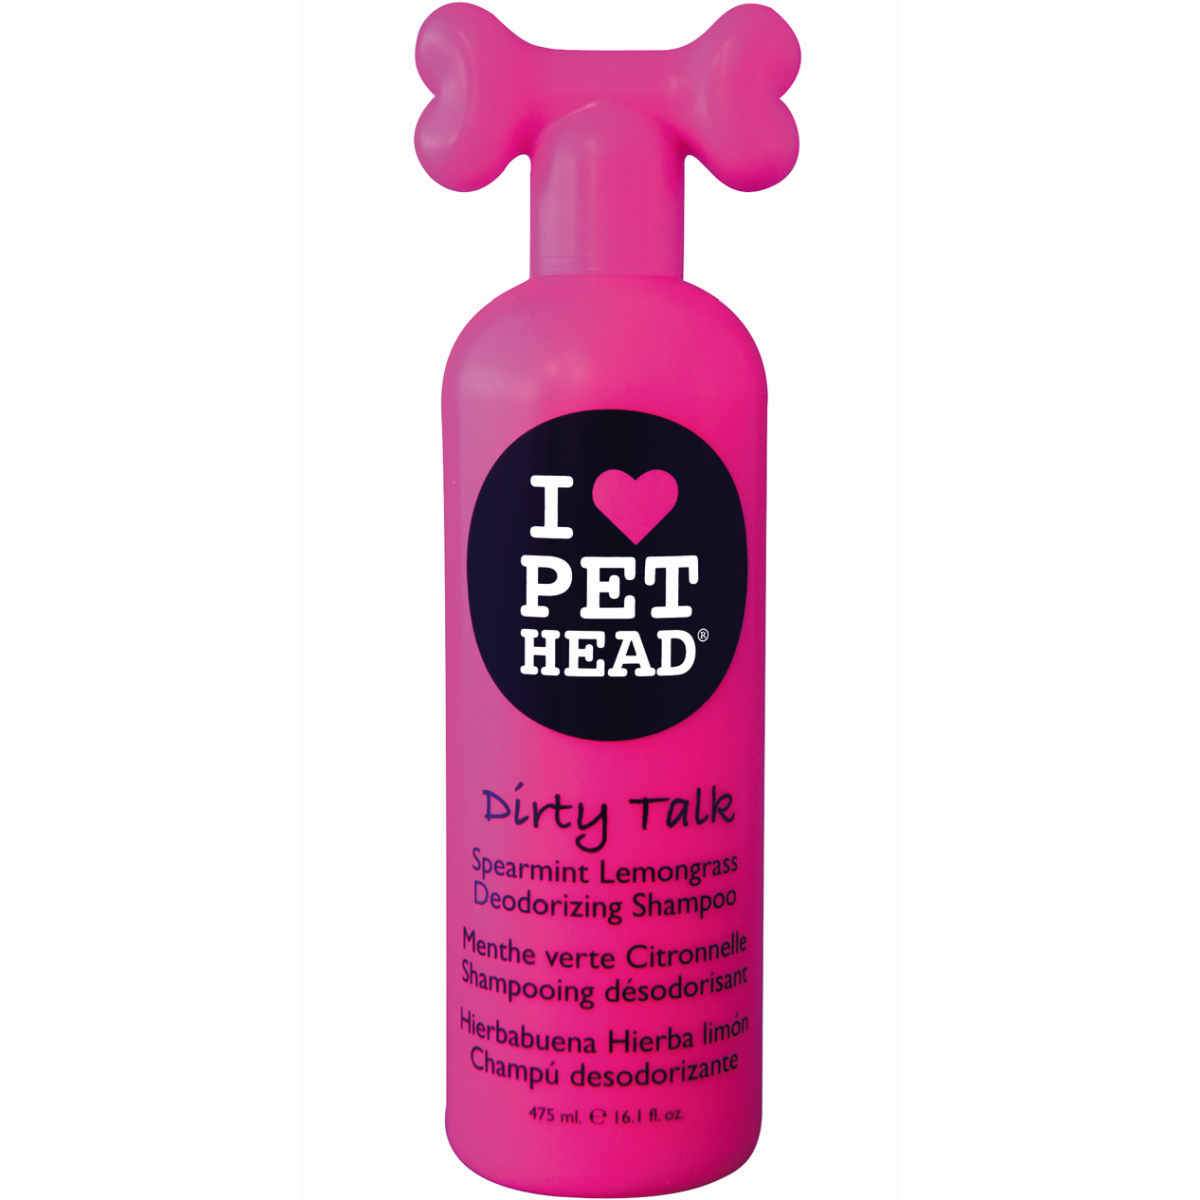 PH DIRTY TALK 475ML 00001